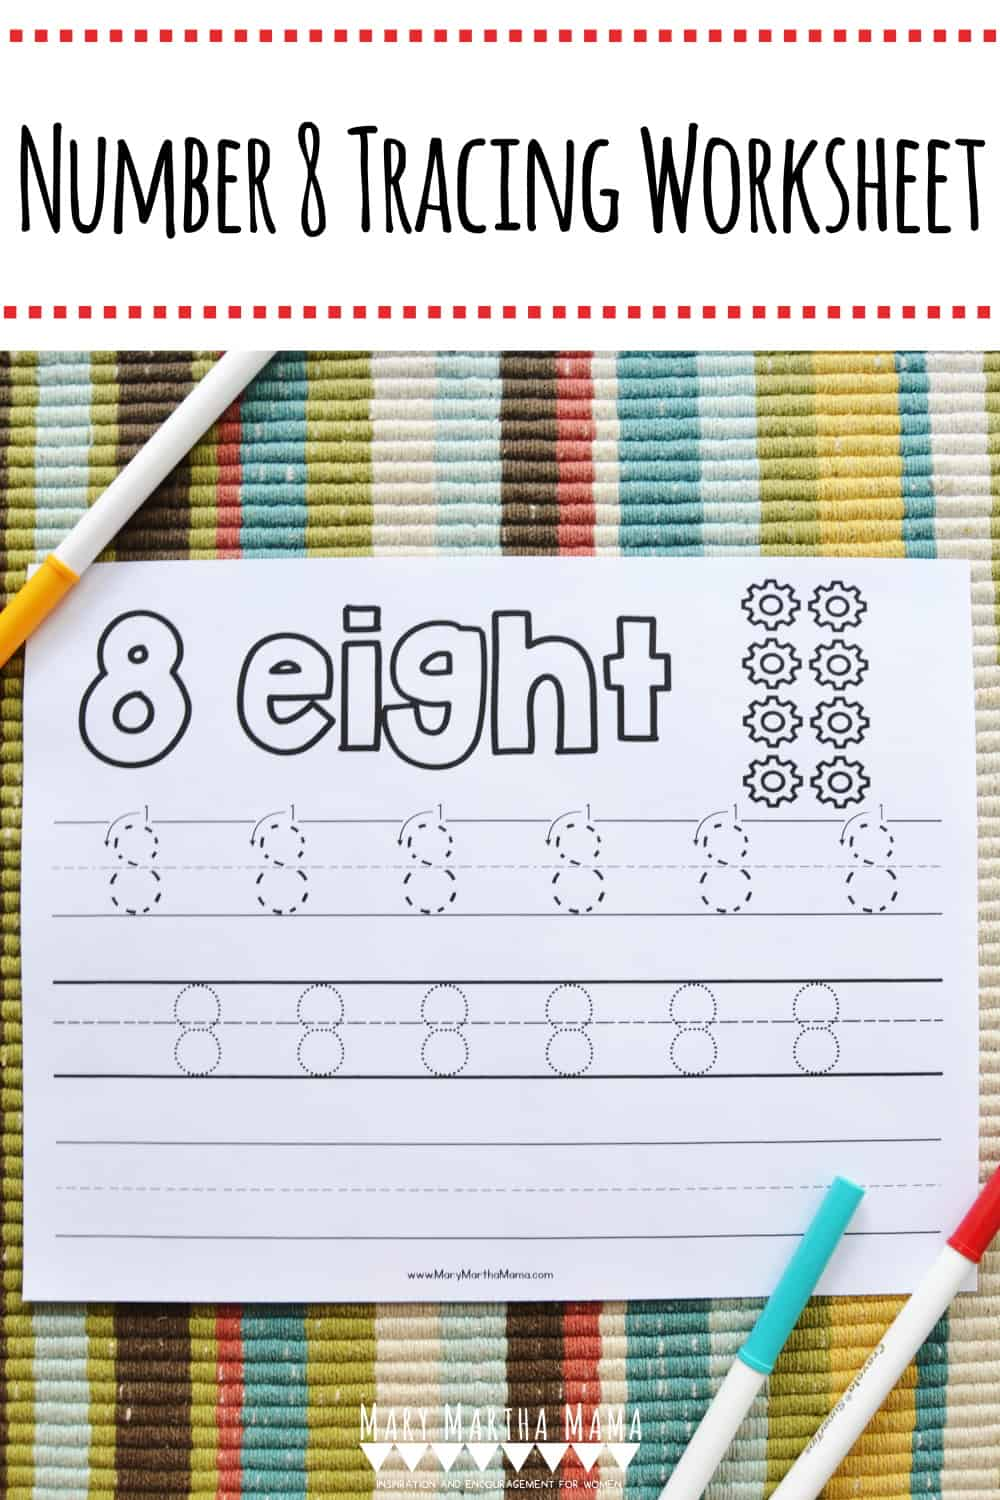 Use this free printable Number 8 Tracing Worksheet to help your kiddo learn how to write number 8. Features tracing with and without arrows to guide.